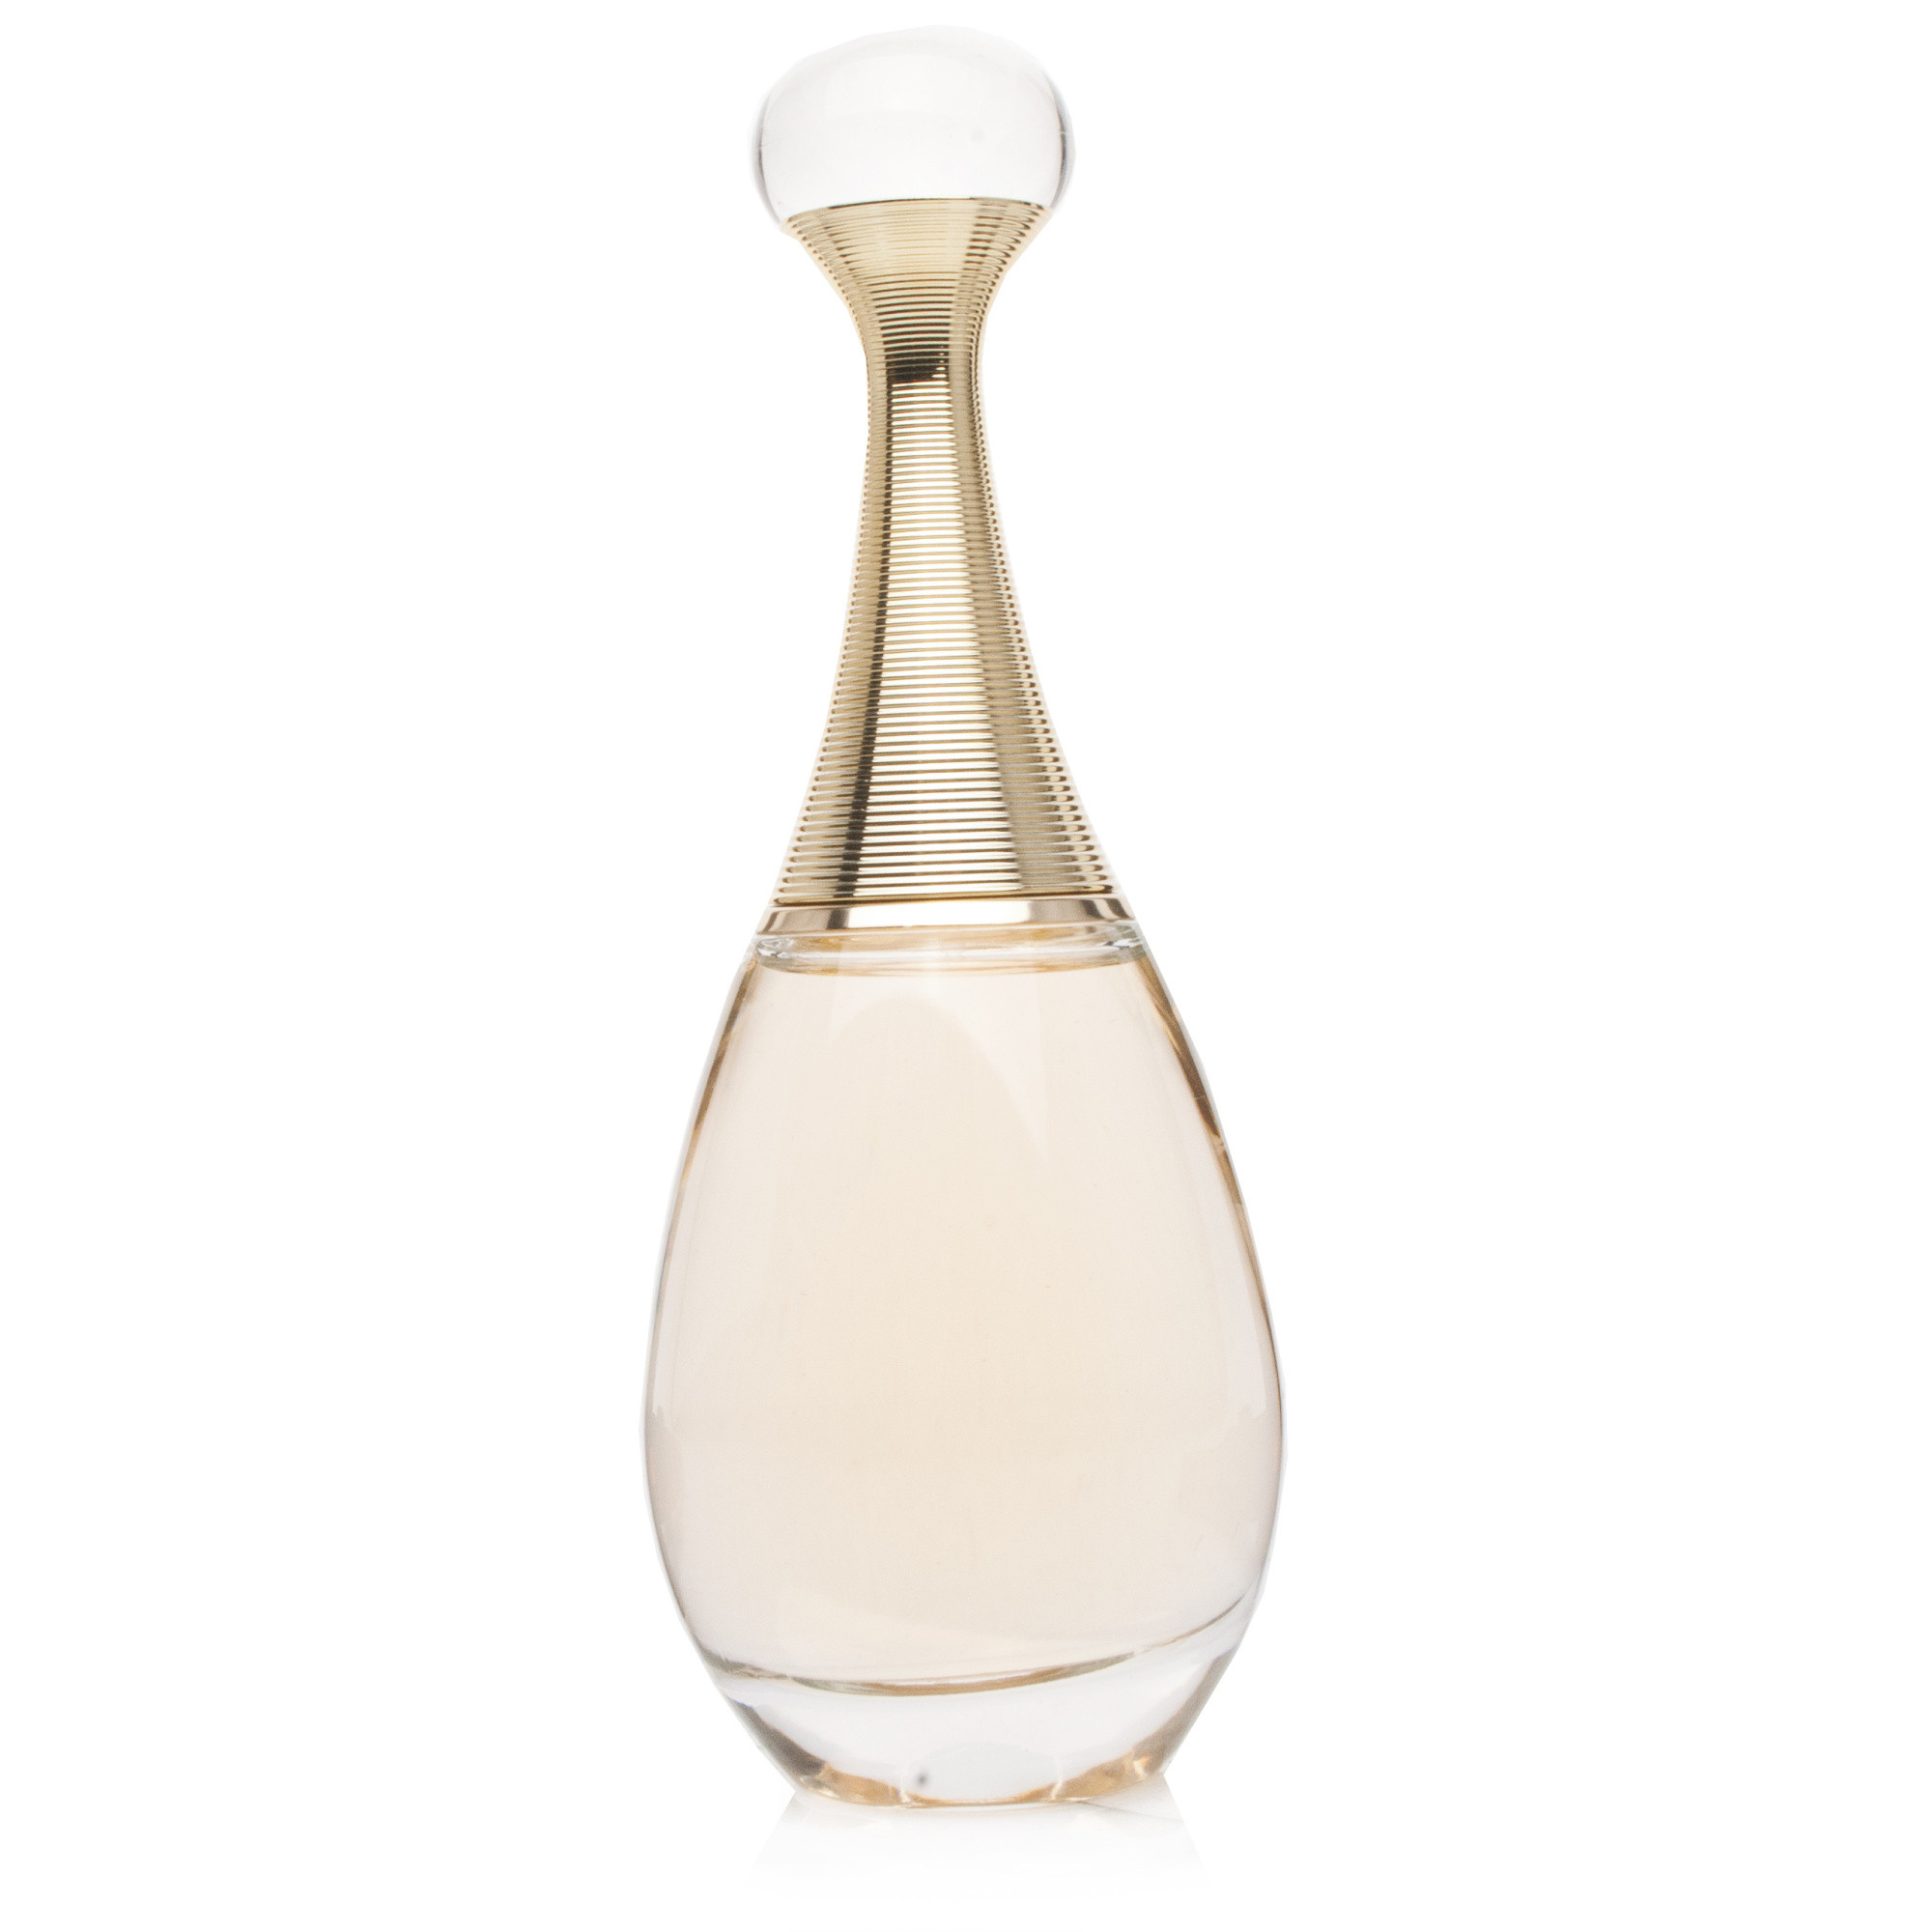 Find discount perfumes, discounts on leading brands of cheap women's perfumes, men's colognes, skin care and hair care products.